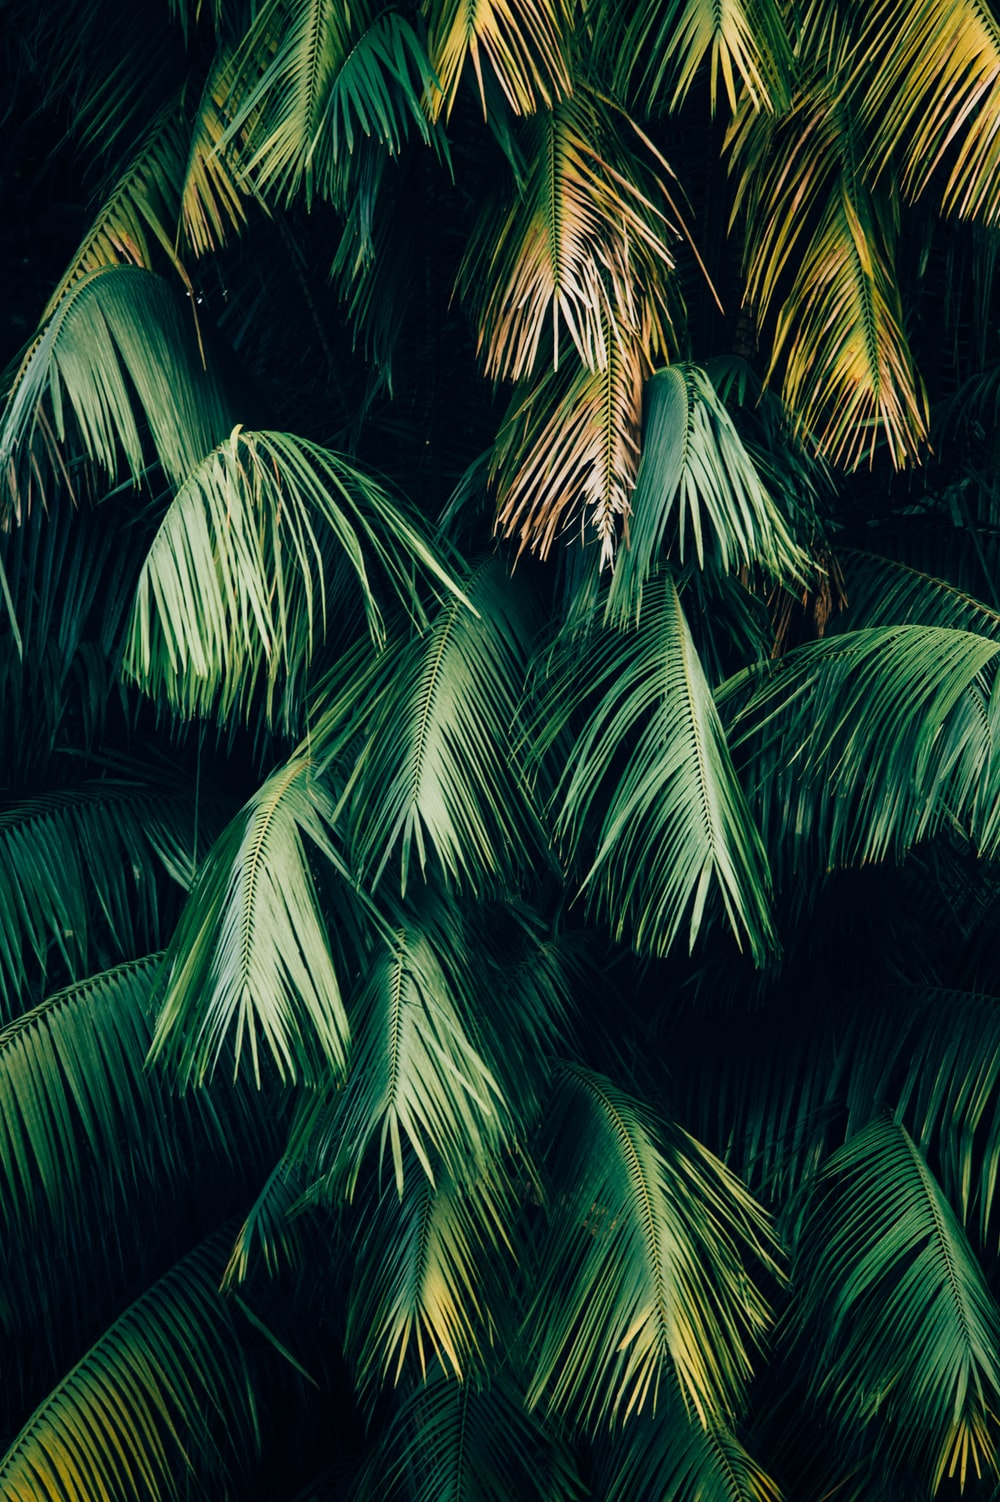 Tropical Leaf Pictures Download Free Images On Unsplash 1920 x 1080 jpeg 662 кб. tropical leaf pictures download free